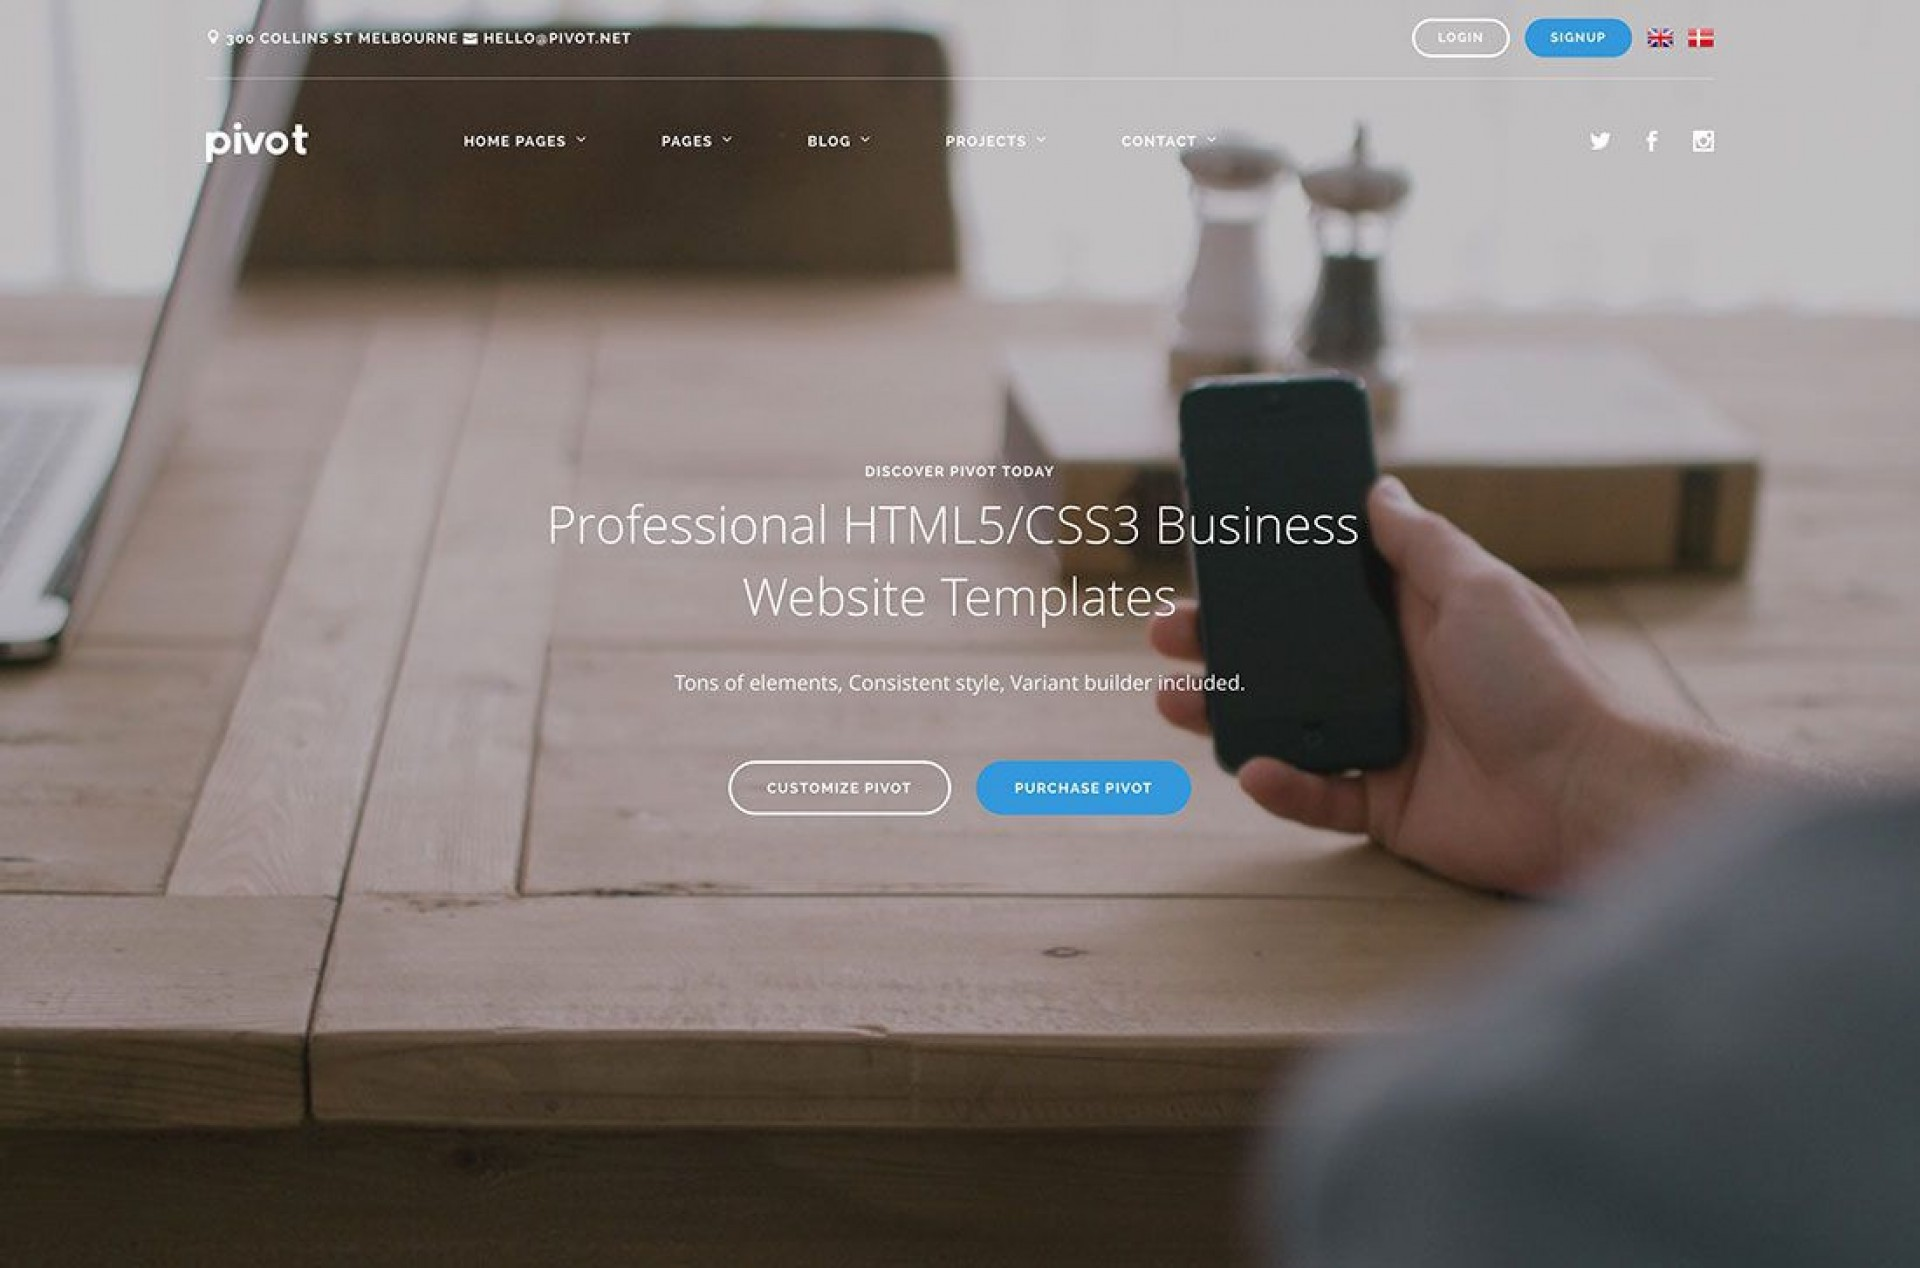 004 Impressive Busines Website Html Template Free Download Idea  With Cs Company1920